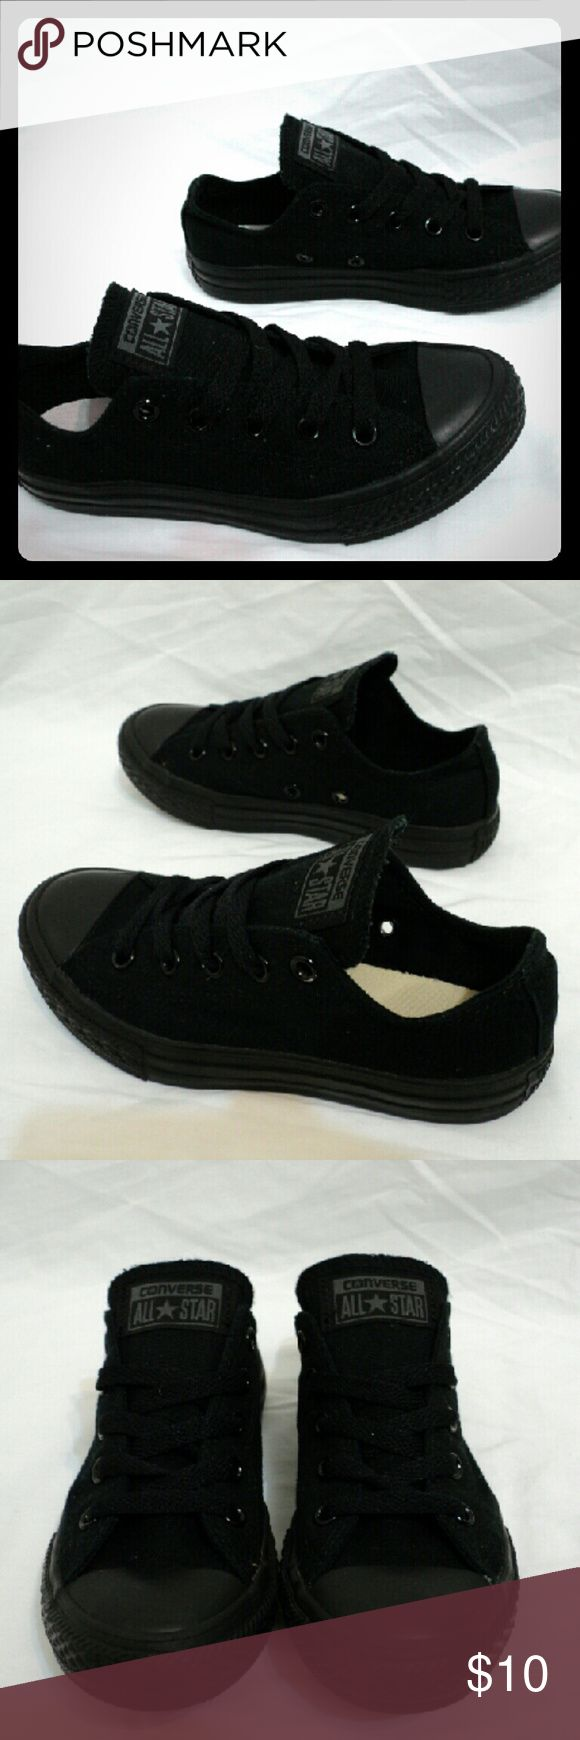 Black Low Top Converse Kids Size 13 Boys Girls Black low top Converse All Star Chuck Taylor Sneakers Kid's size 13 In good used condition, still have a lot of wear left and no holes or stains Converse Shoes Sneakers